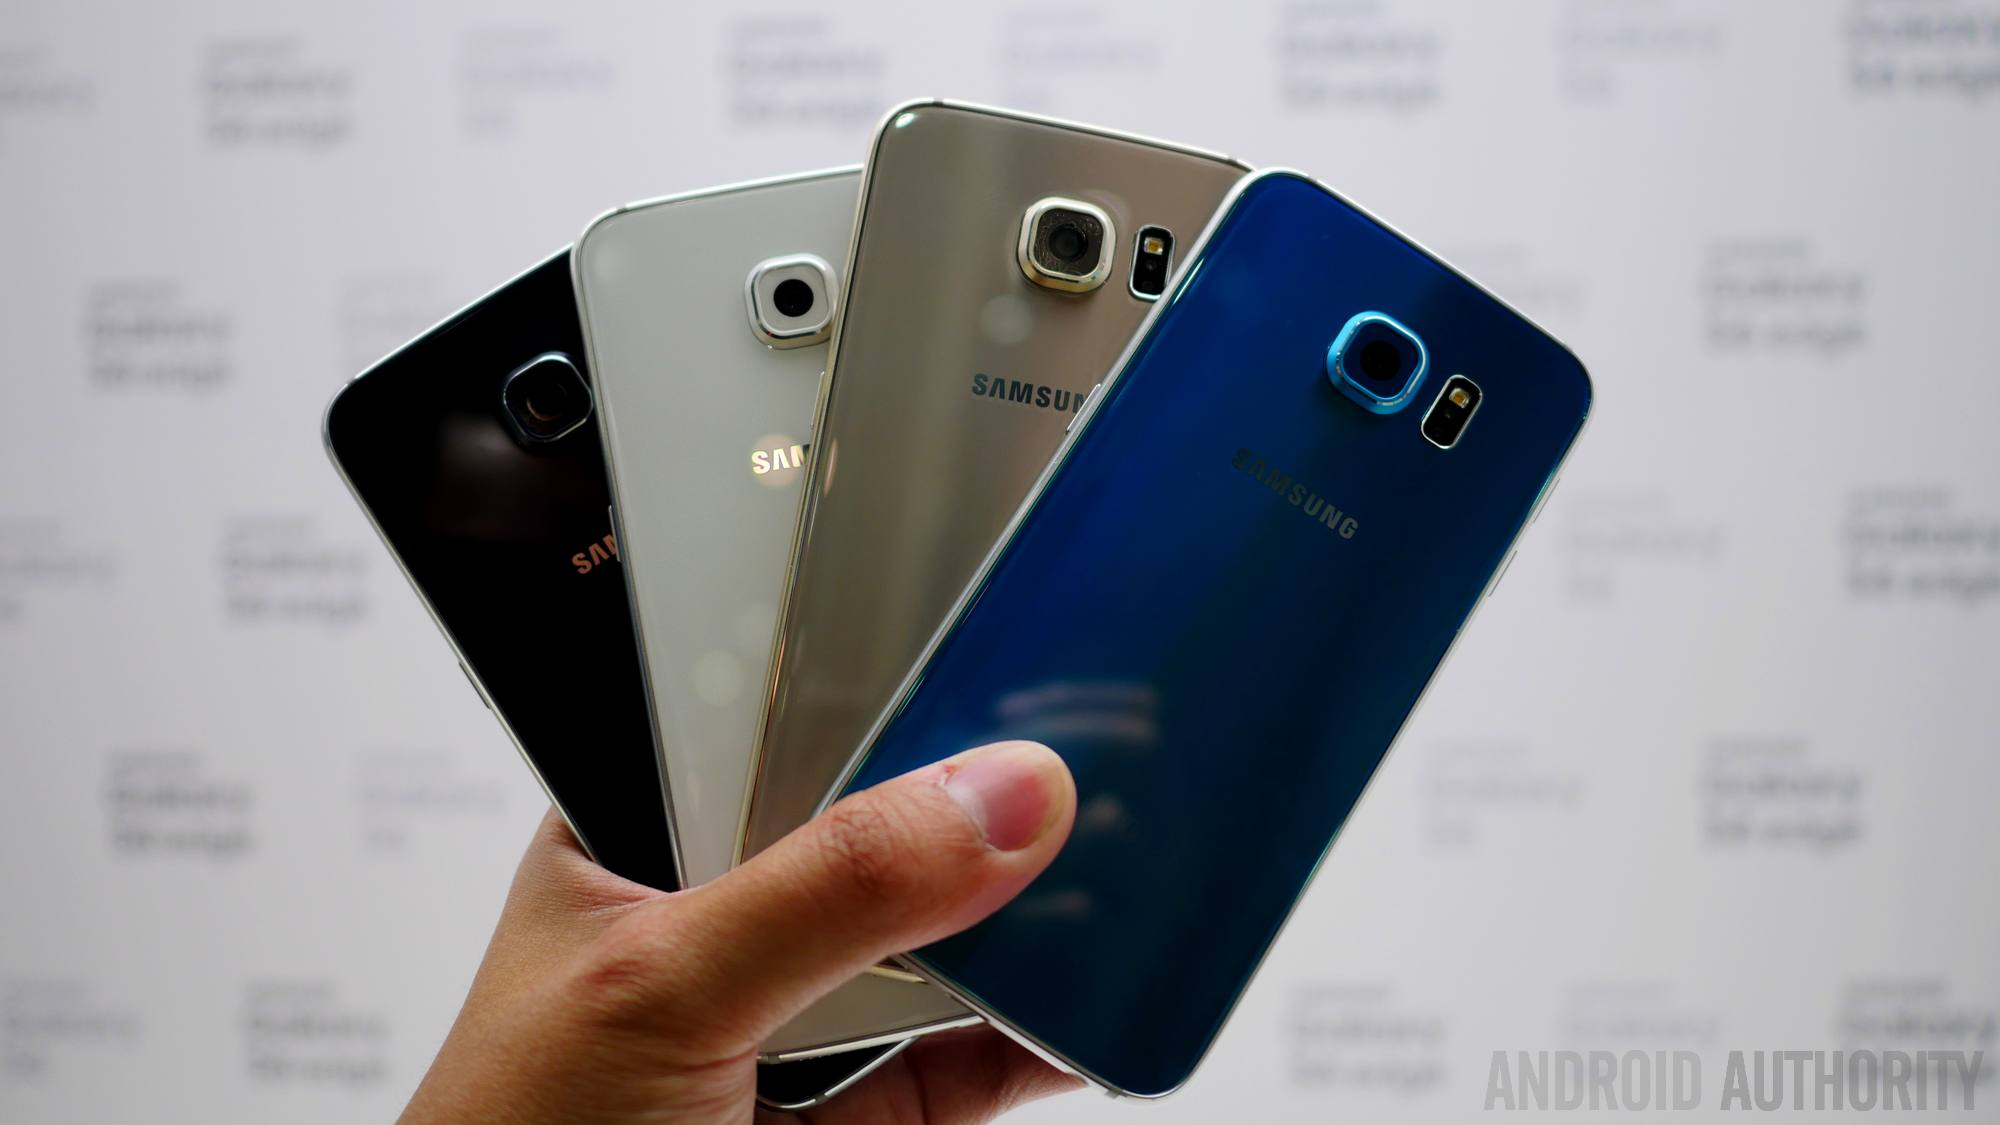 samsung galaxy s6 coloris